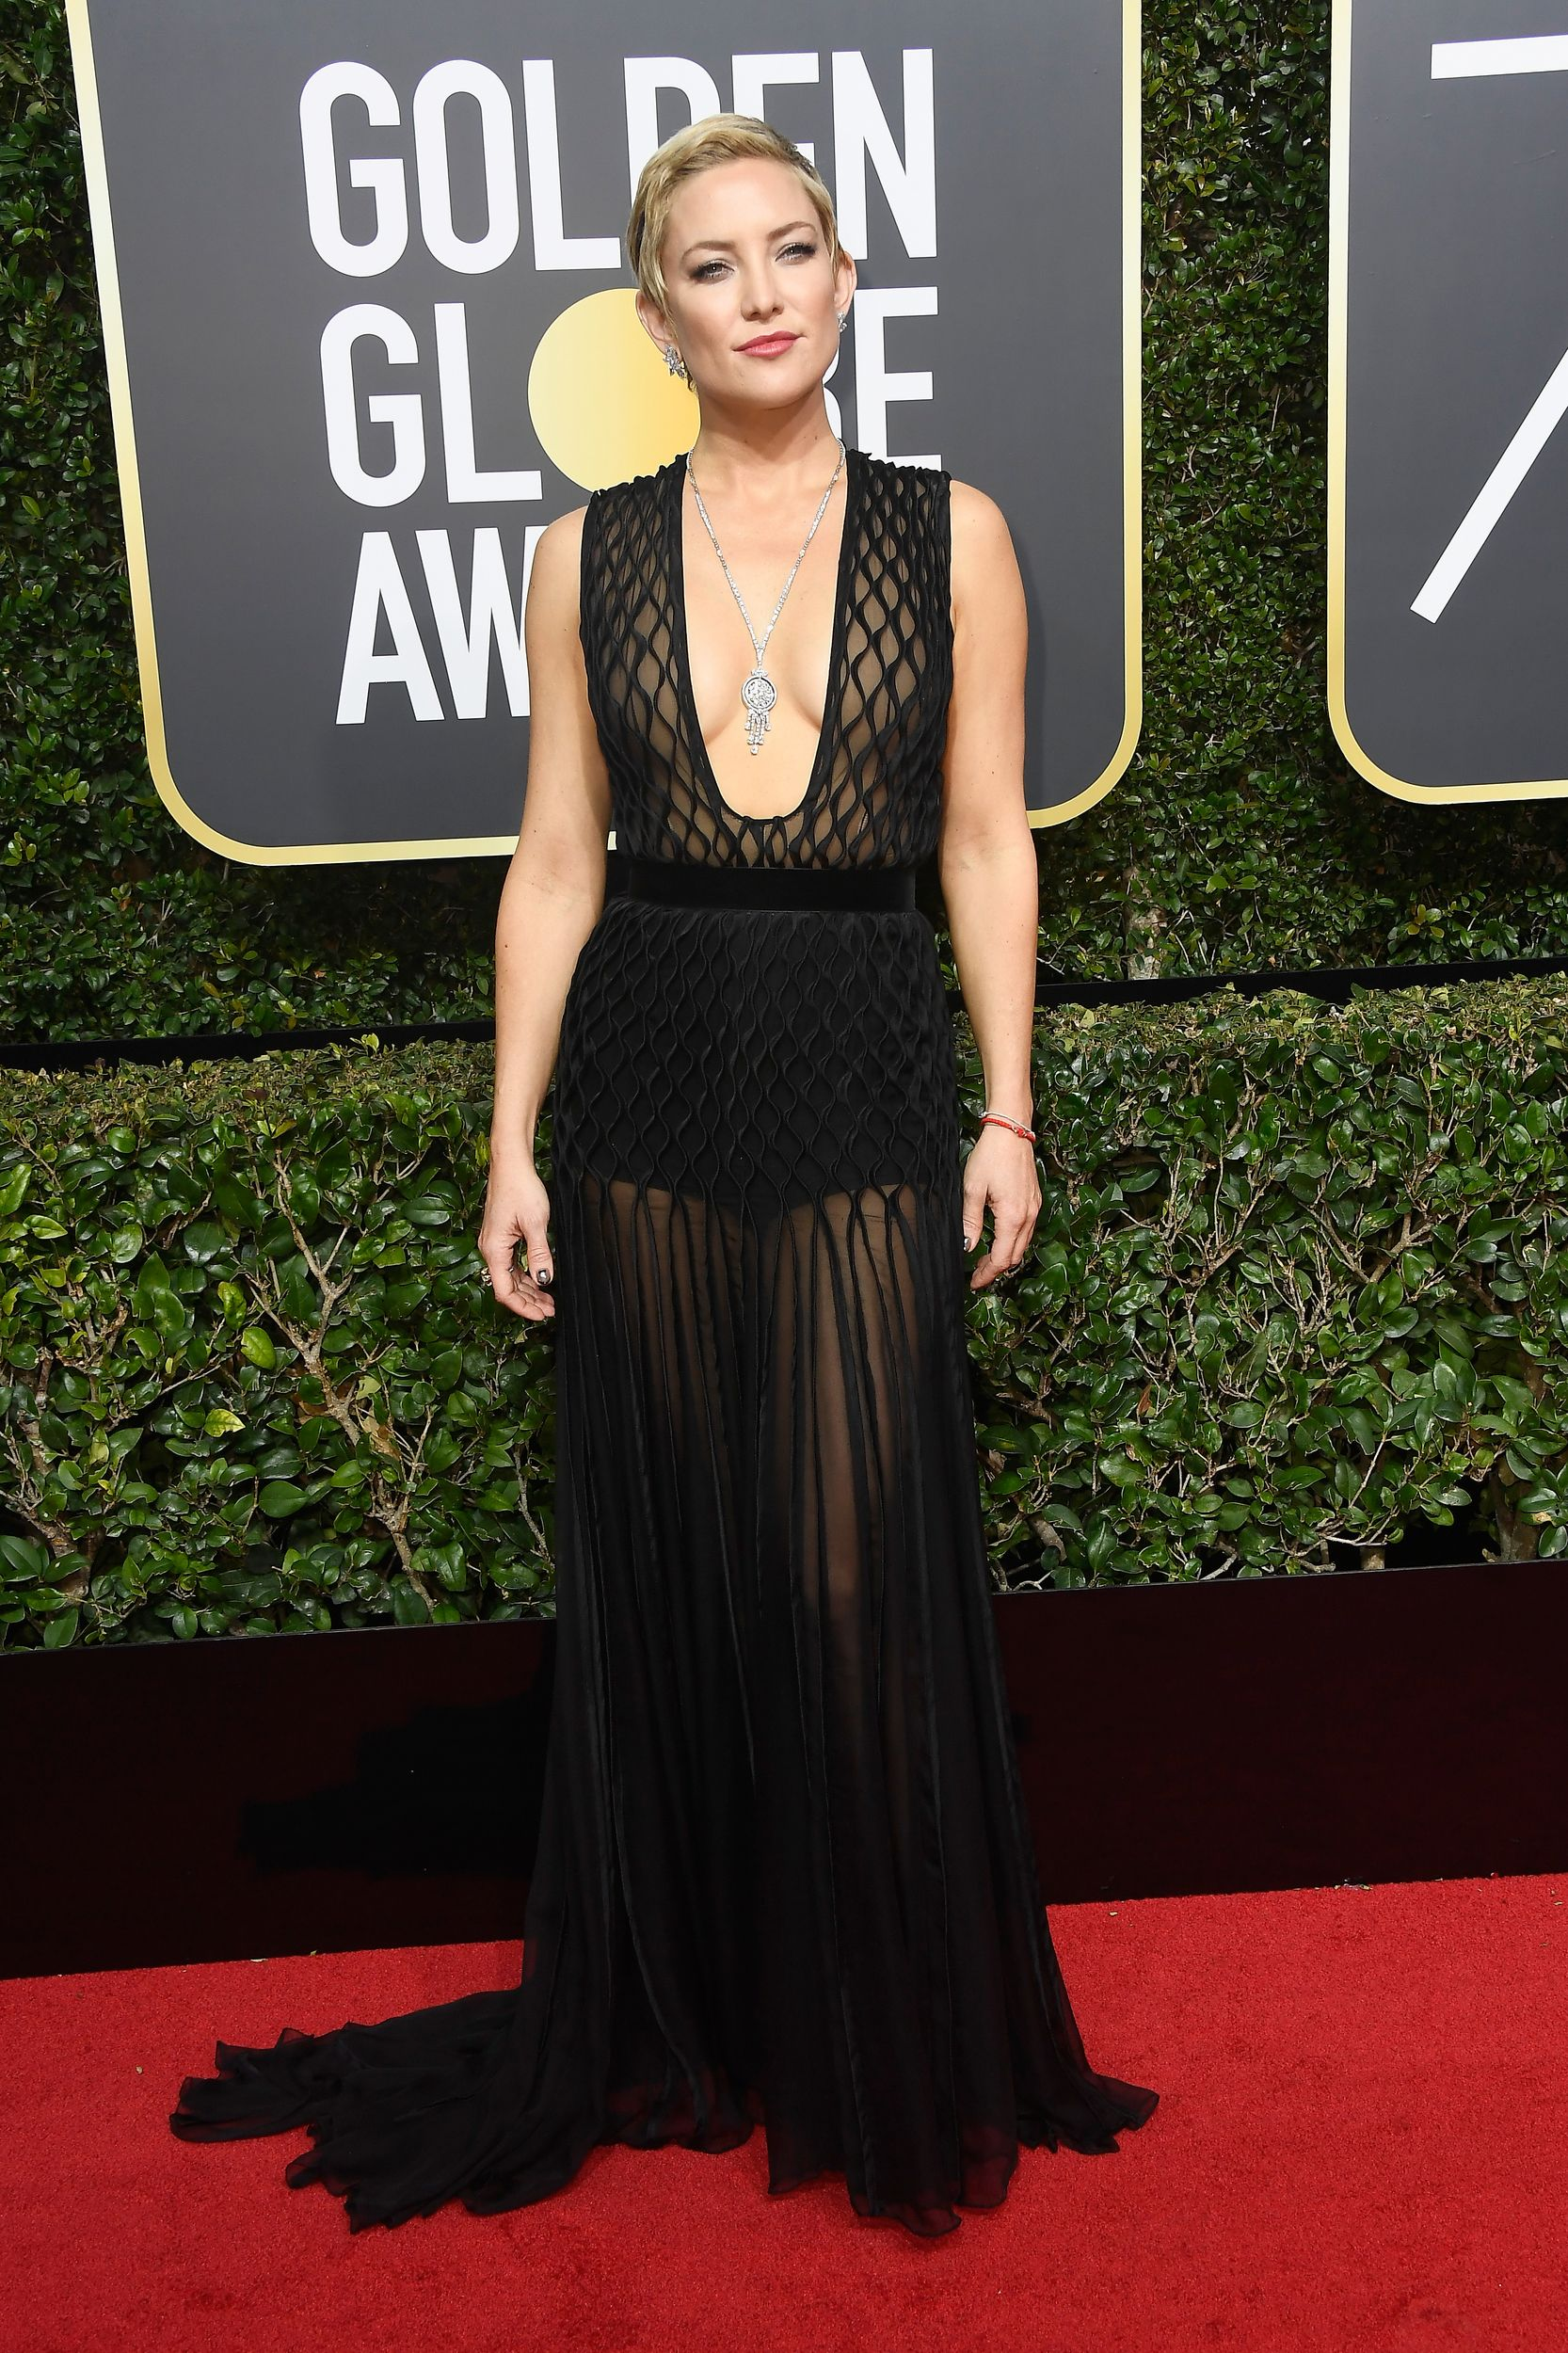 Nicole Kidman S Givenchy Gown Was One Of The Prettiest Dresses At The 2018 Golden Globes Red Carpet Dresses Golden Globes Dresses Nice Dresses